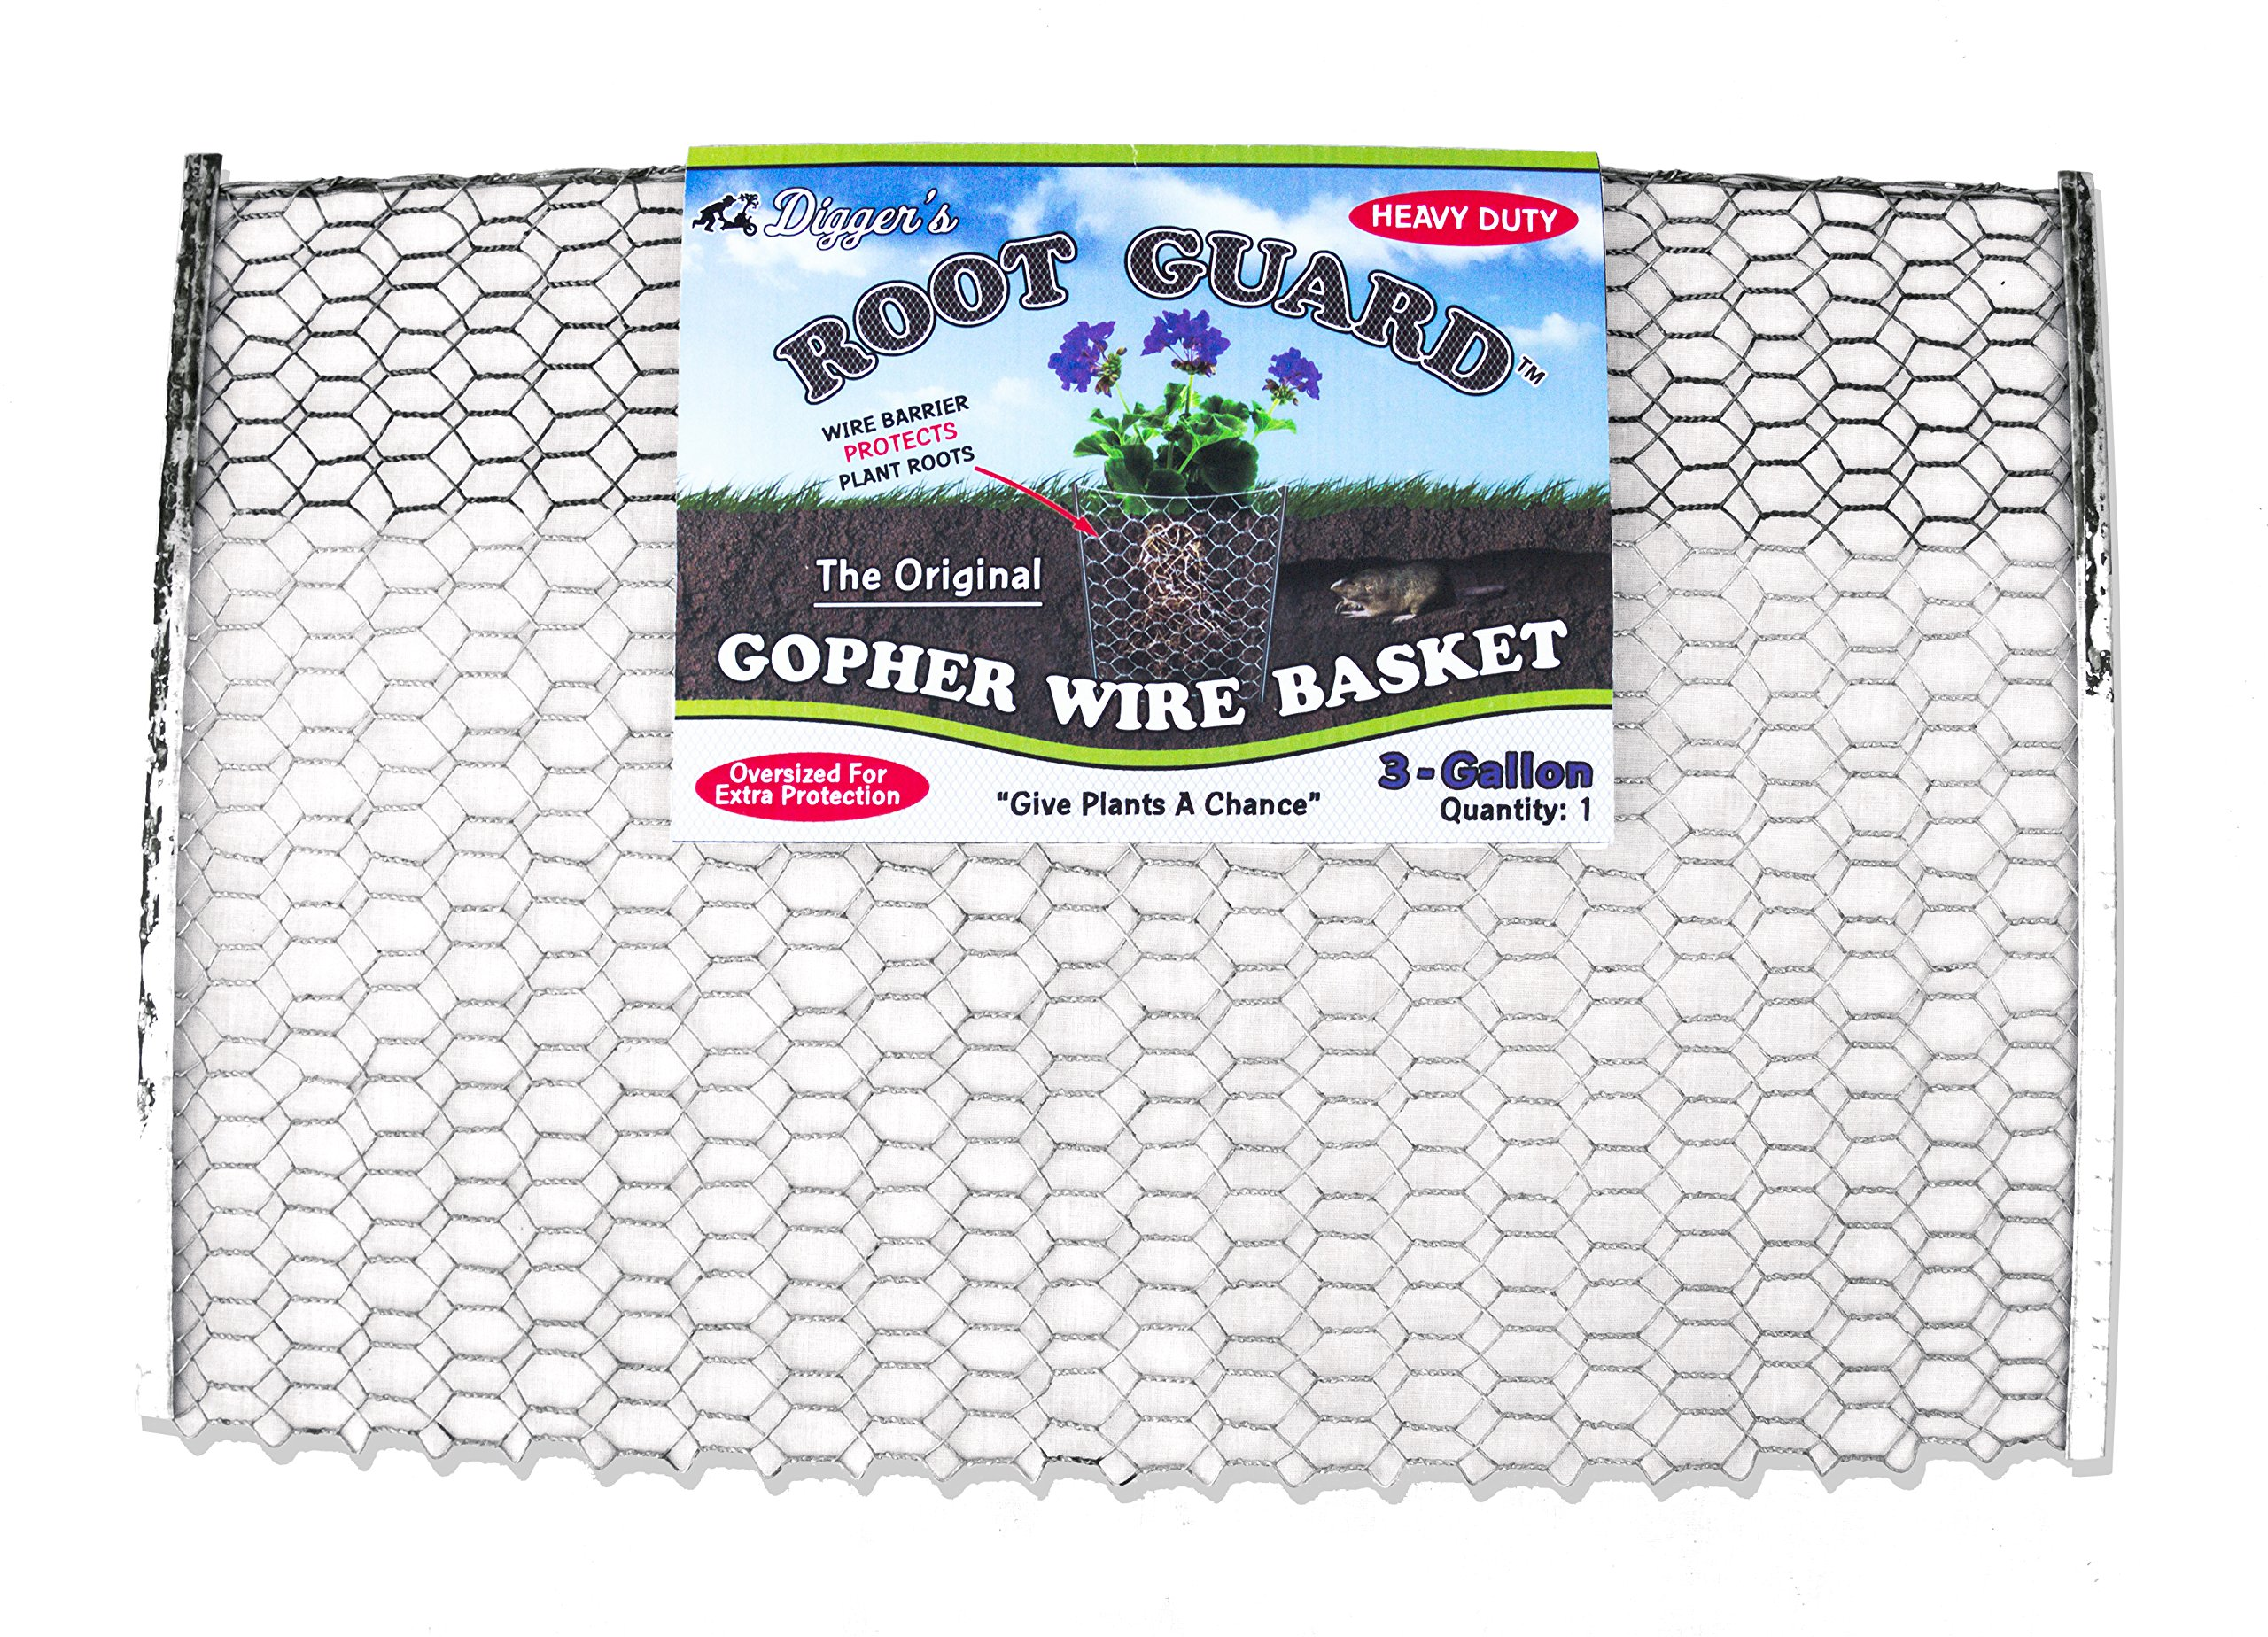 12 QTY Digger's RootGuardTM 3-Gallon Heavy Duty Gopher Wire Baskets by RootGuardTM